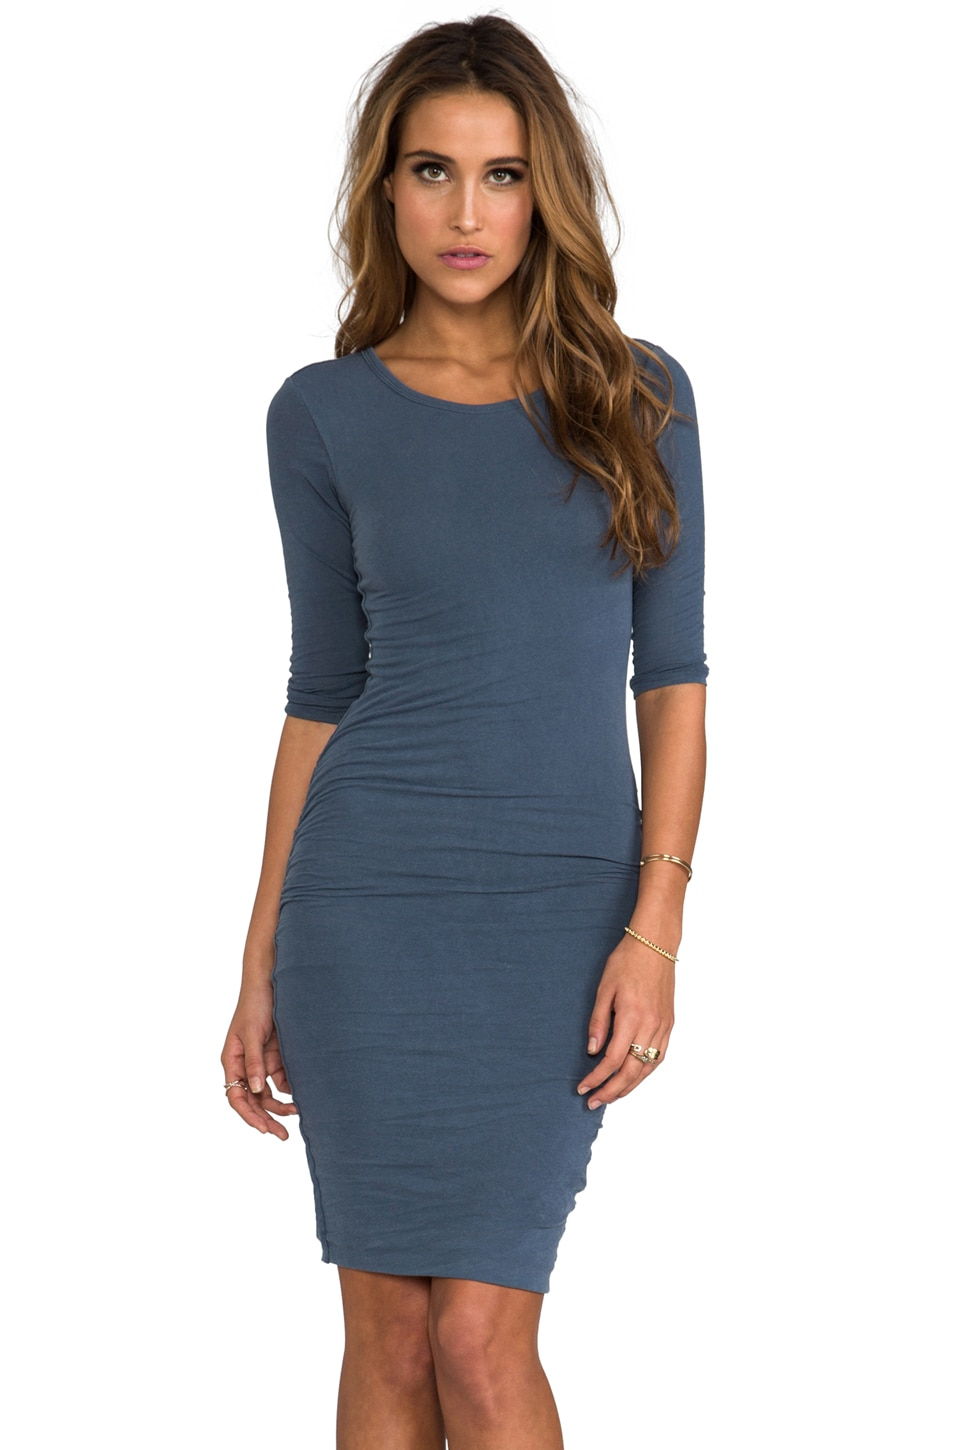 James Perse Jewel Neck Skinny Dress in Marine